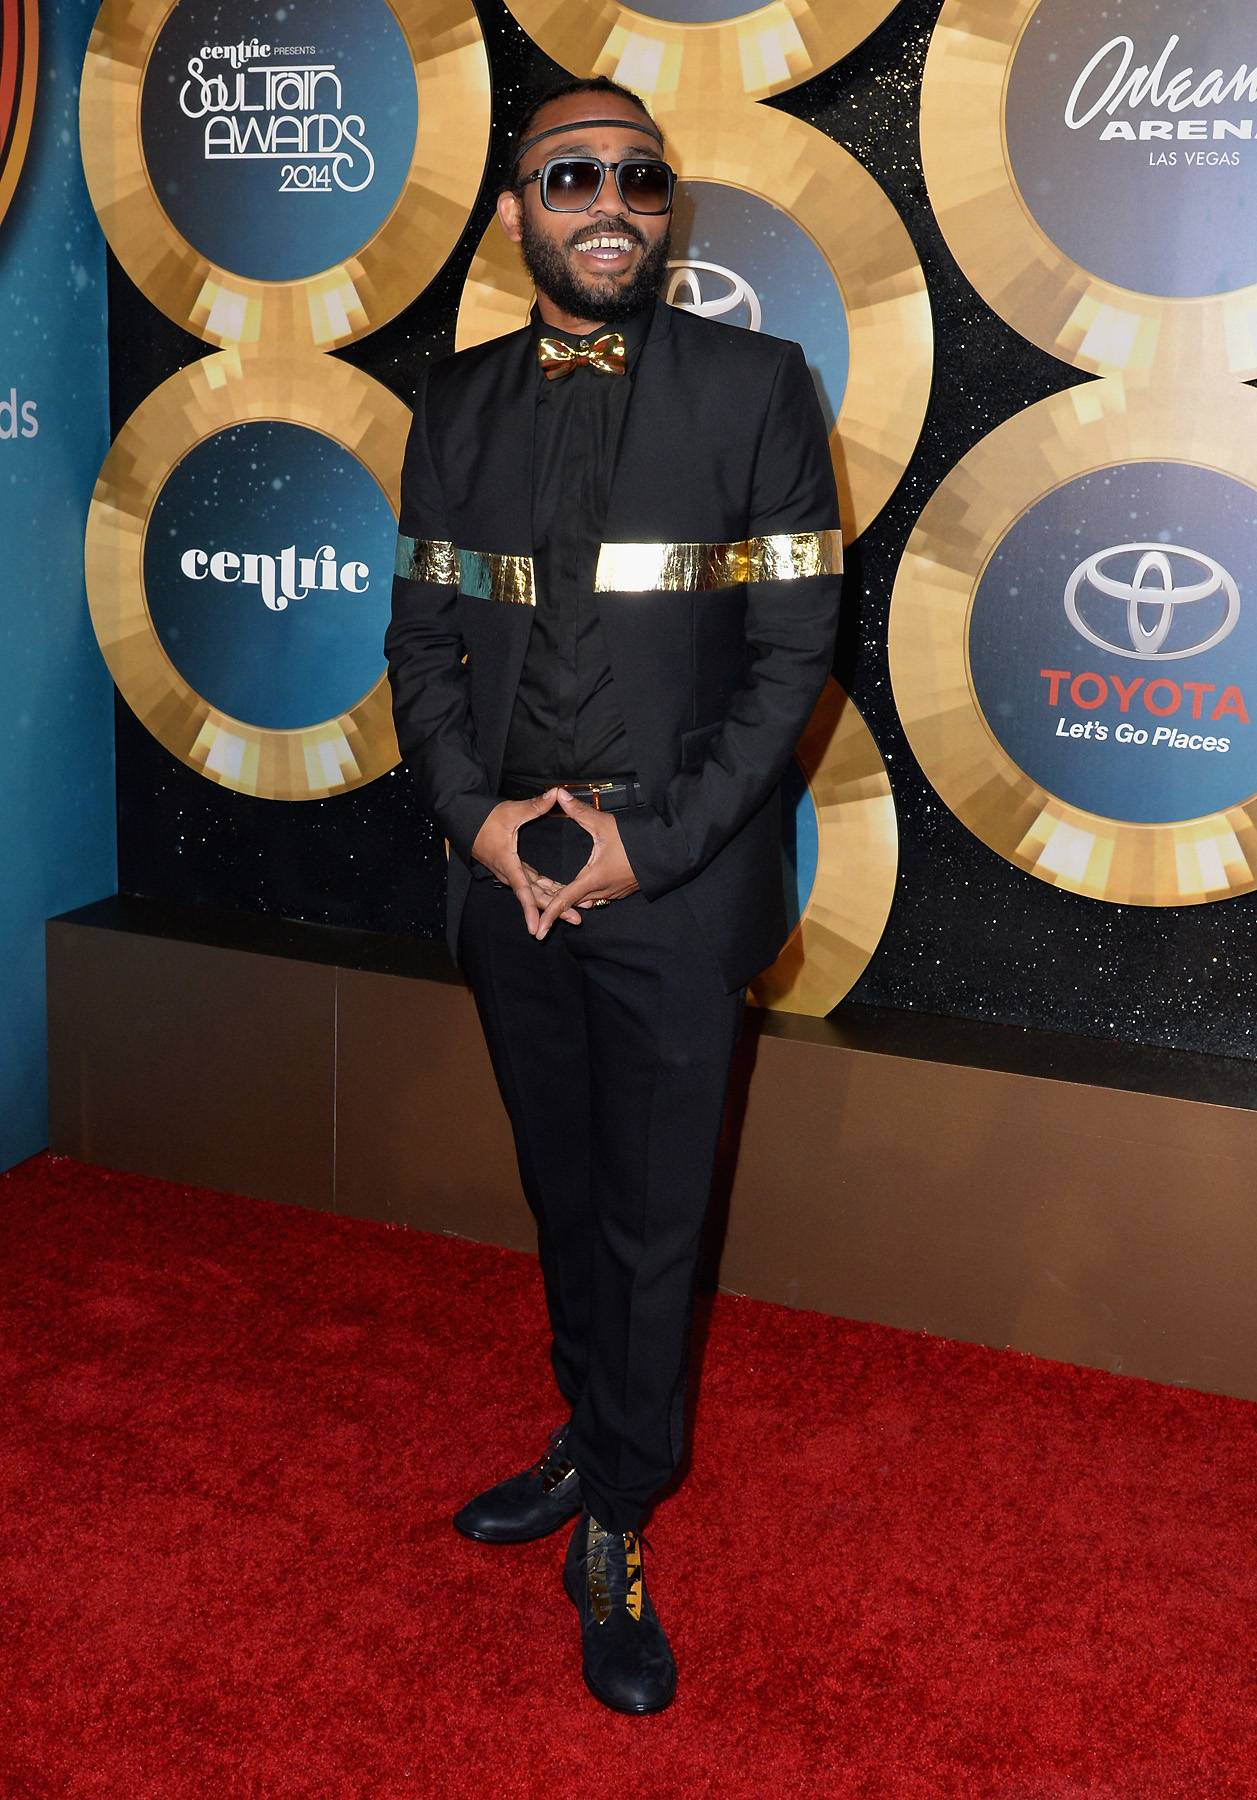 Machel Montano  - Machel Montano ready fi mash up di place. (Photo: Earl Gibson/BET/Getty Images for BET)